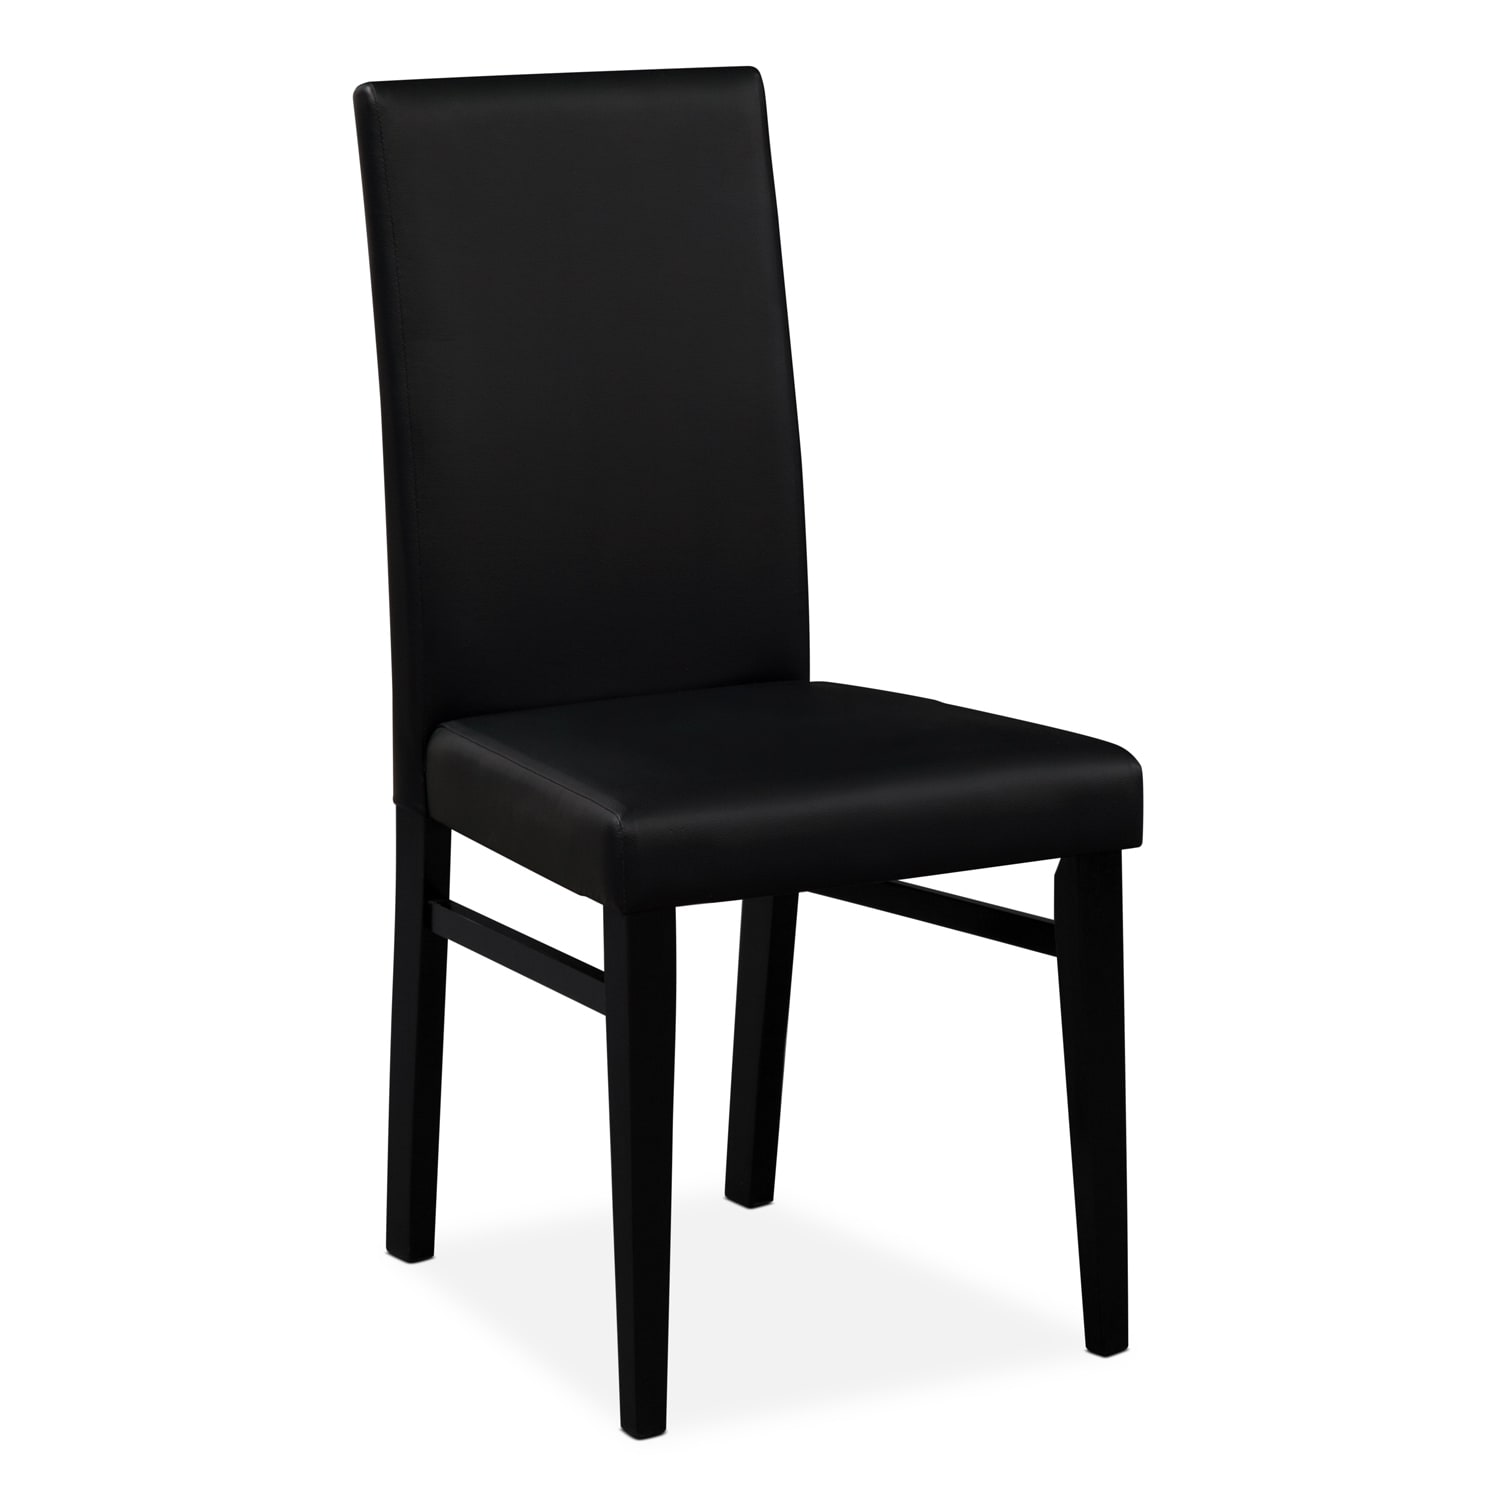 Shadow Chair - Black